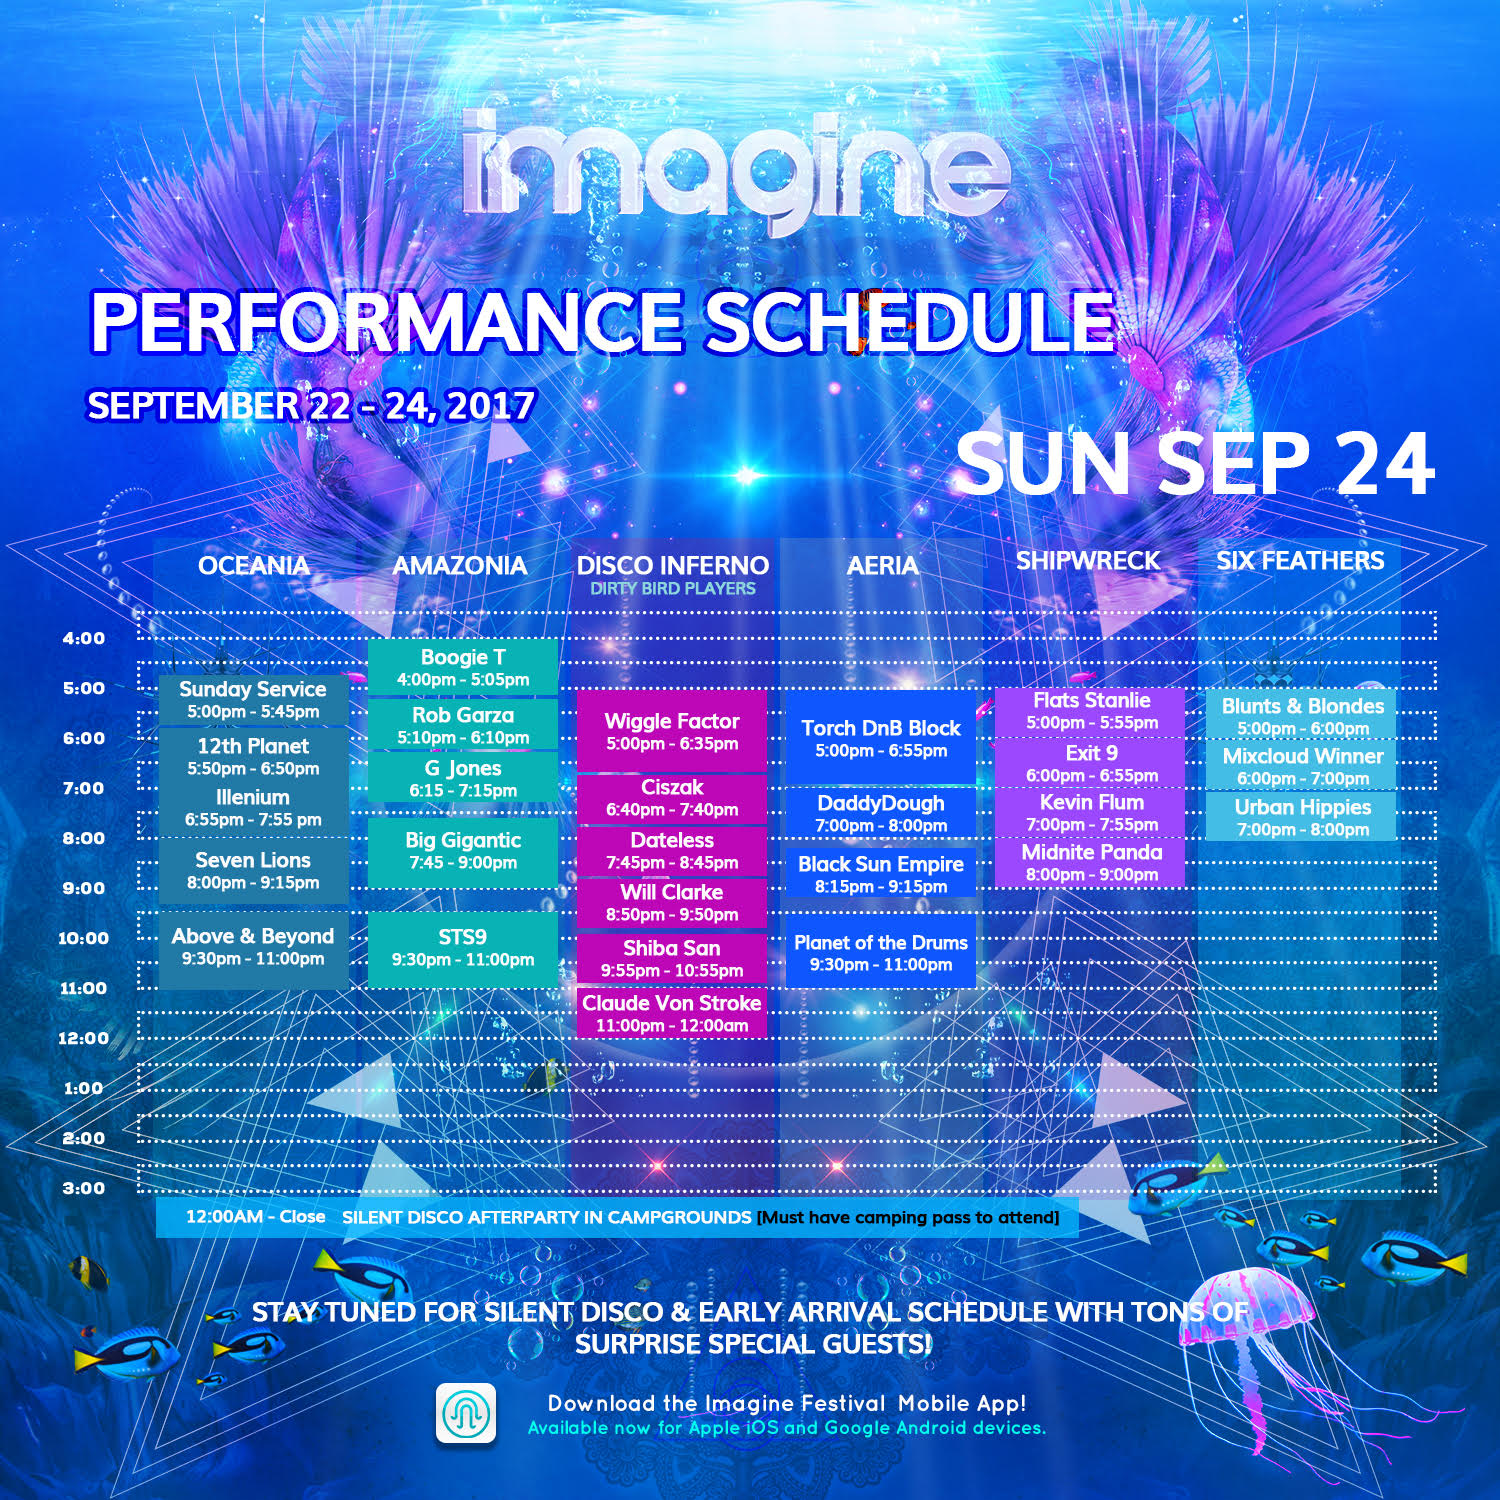 imagine festival 2017 schedule